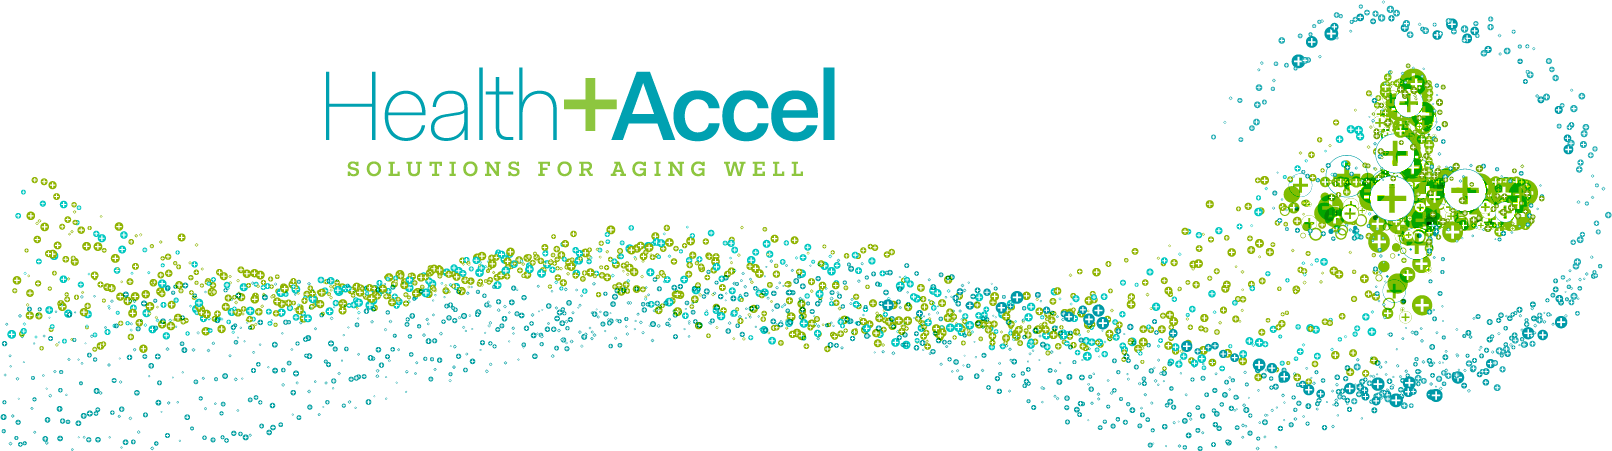 Health + Accel Solutions for Aging Well Graphic